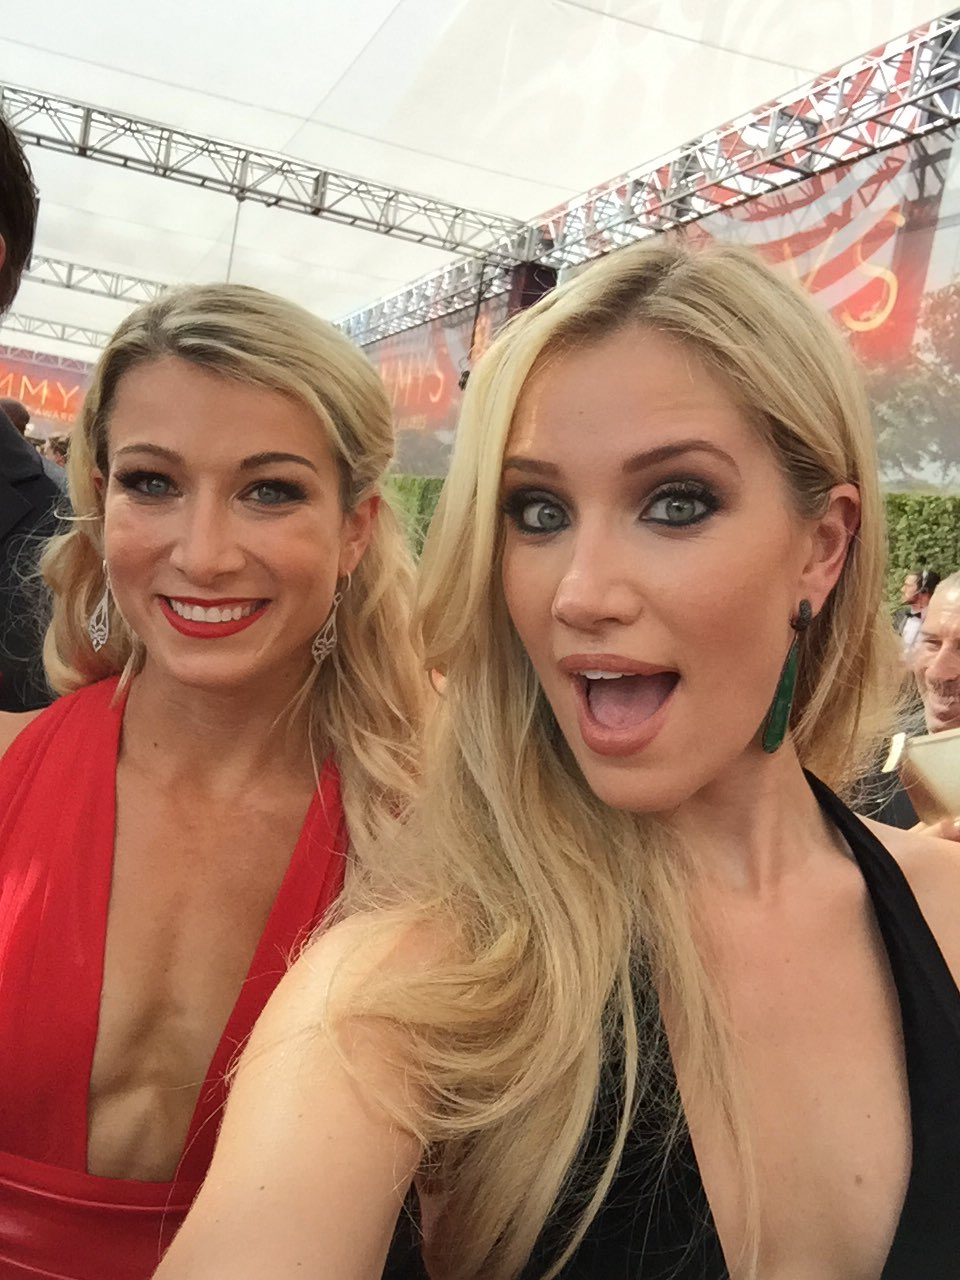 Kristine Leahy On Twitter Quot About To Go Live On Ktla From